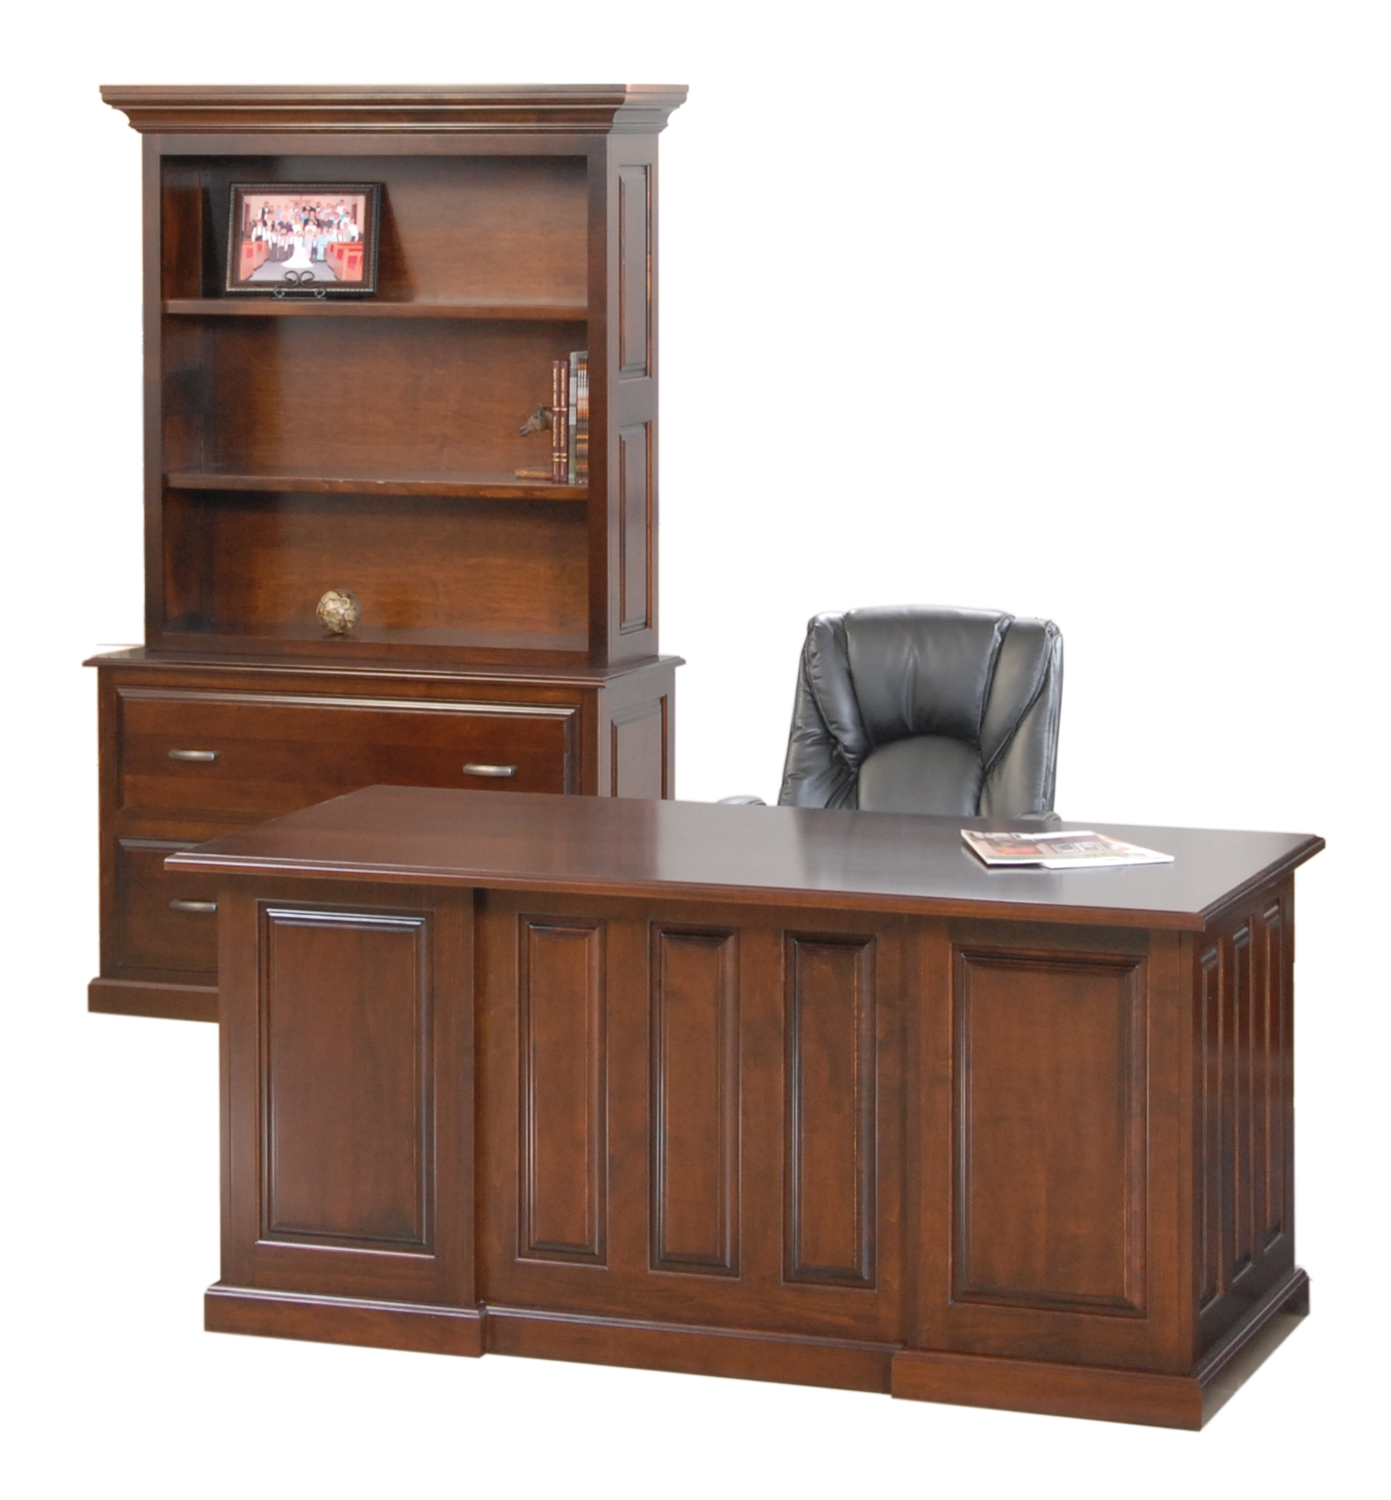 Newport Executive Office Furniture Collection